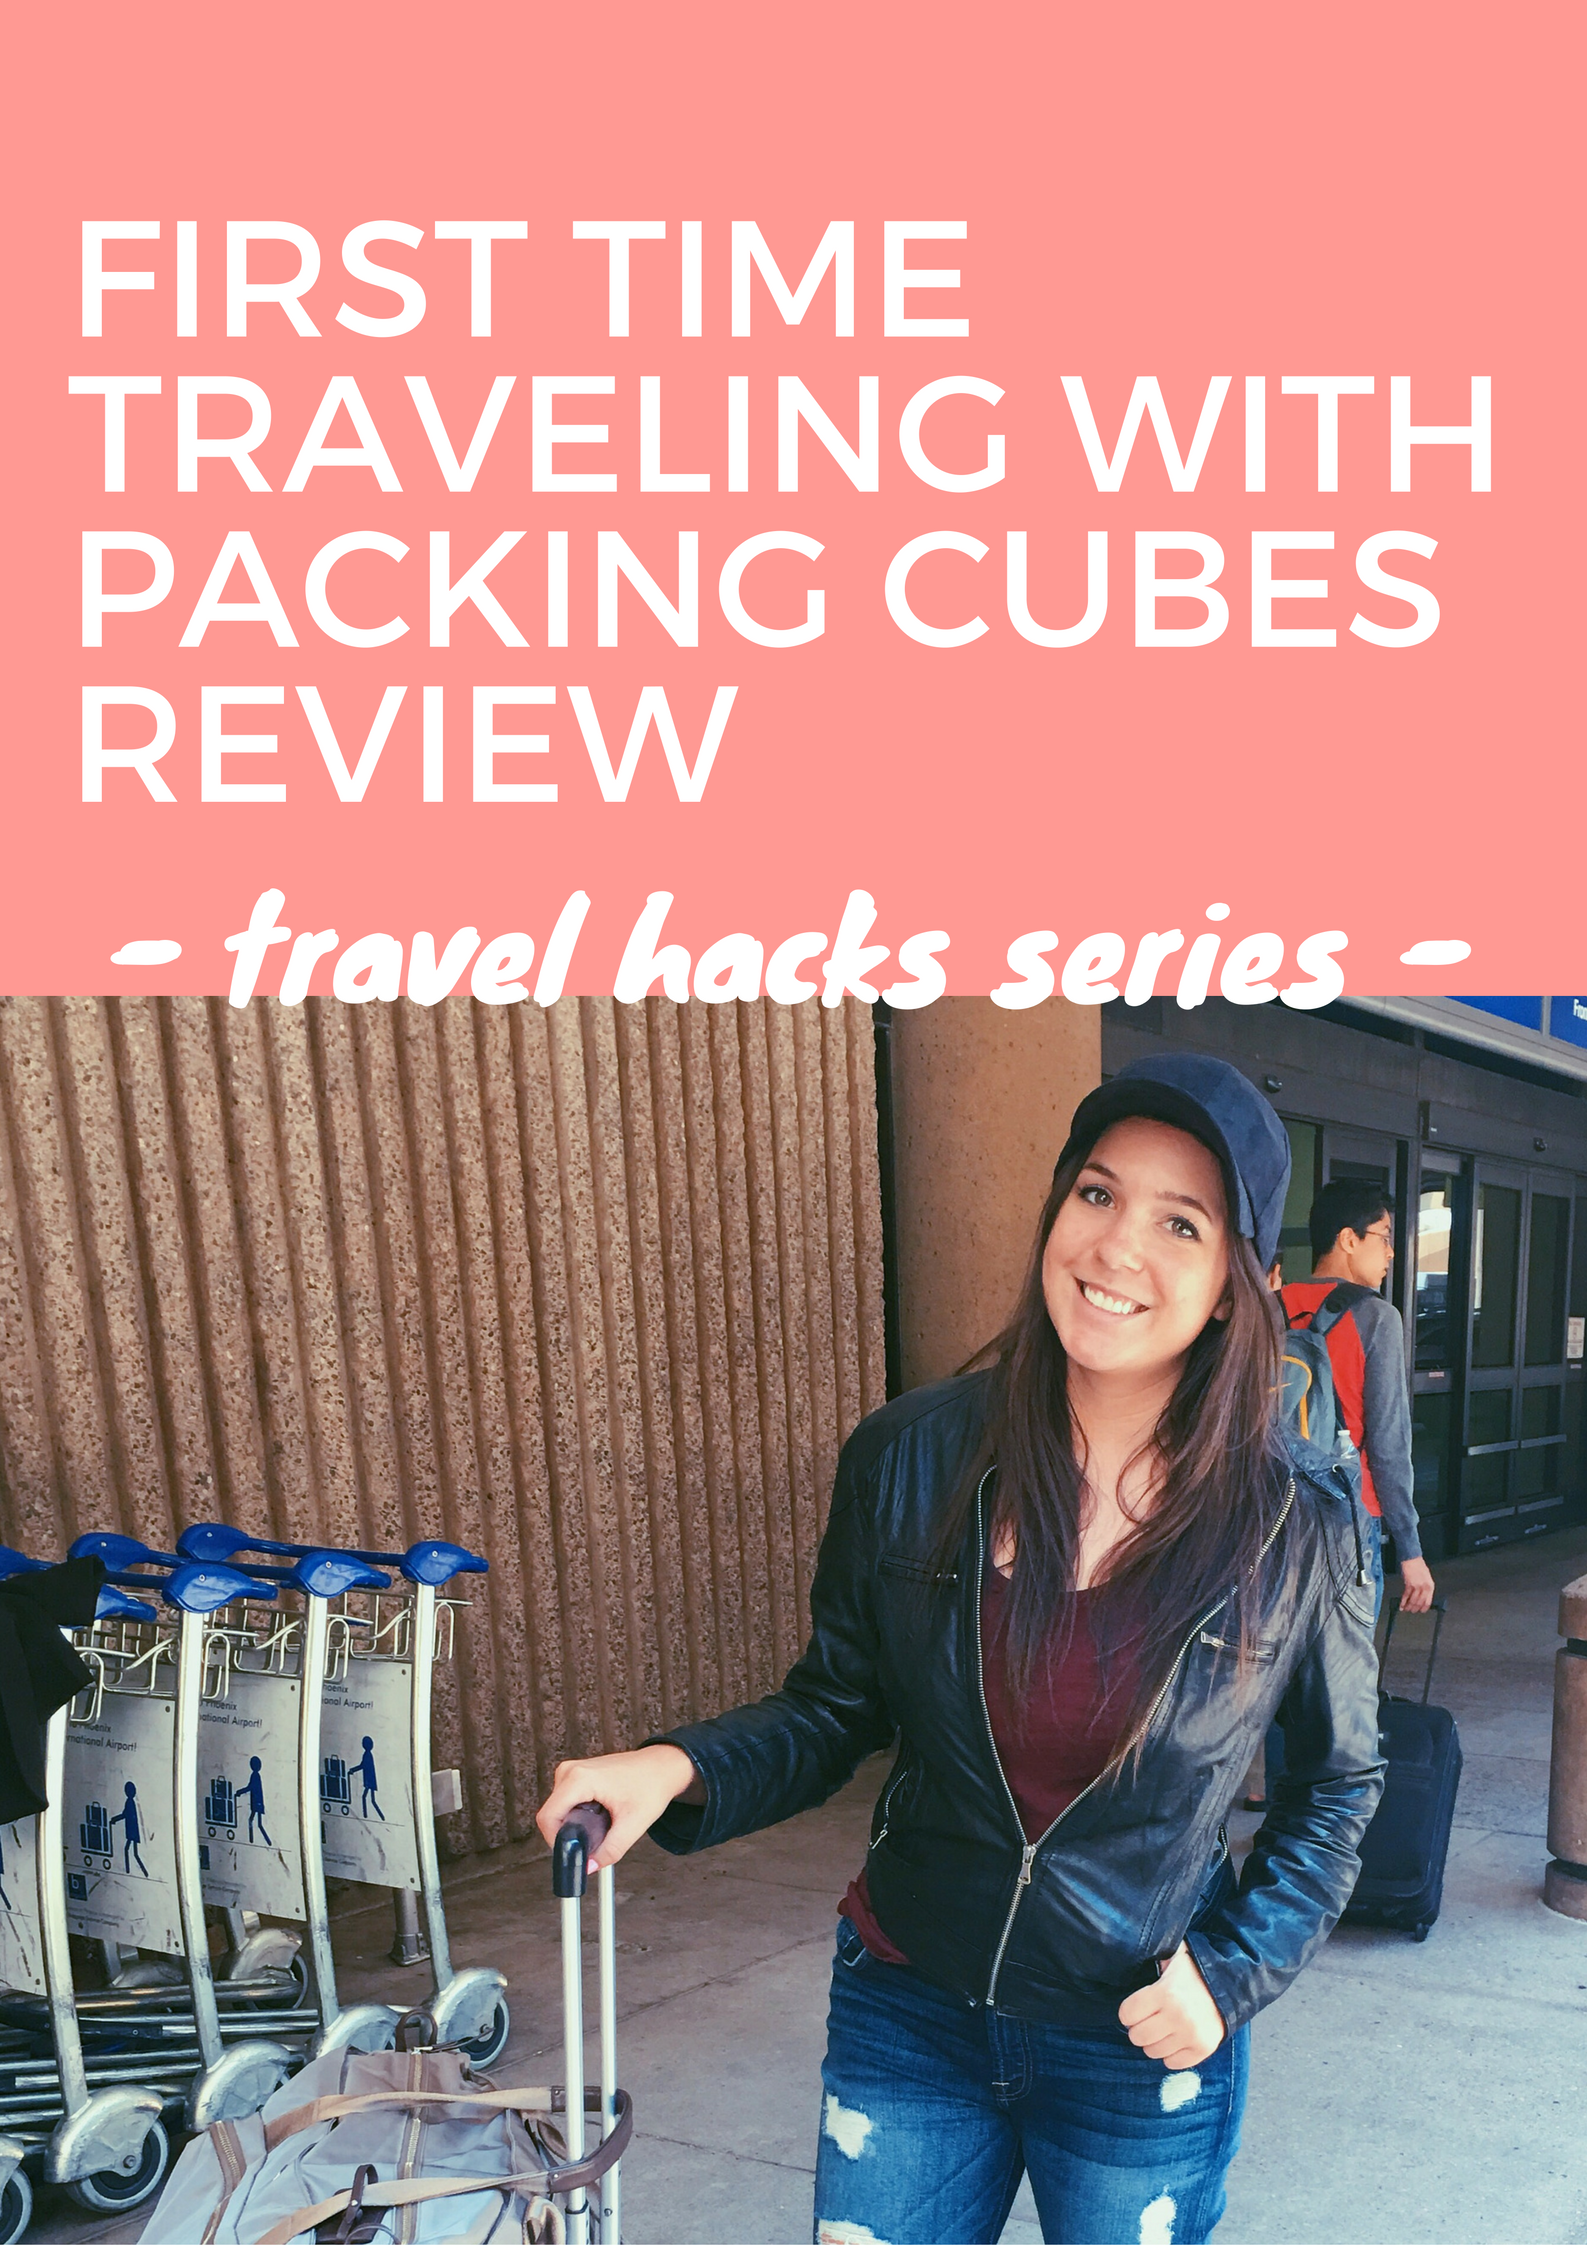 First time traveling with packing cubes review - travel hacks series